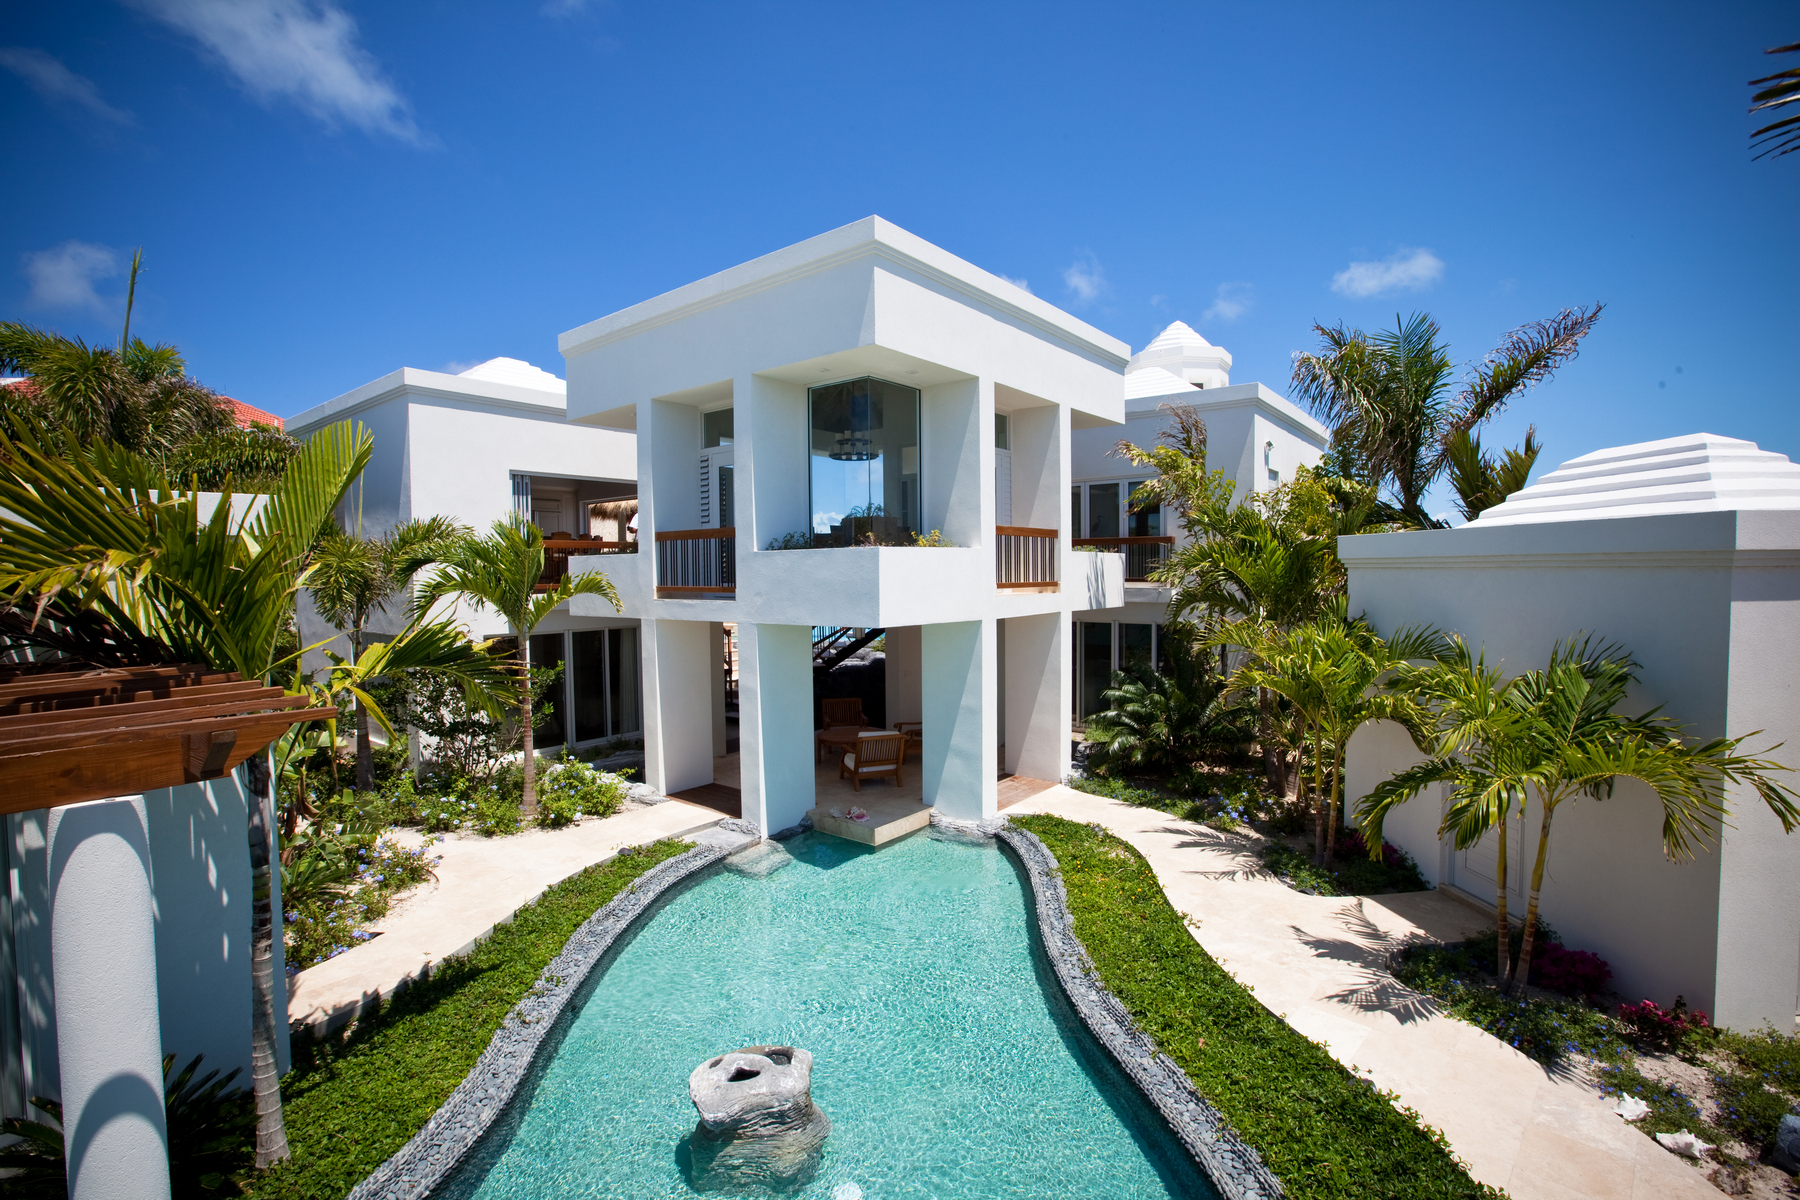 Single Family Home for Sale at Turtle Breeze Villa Beachfront Turtle Cove, TC Turks And Caicos Islands